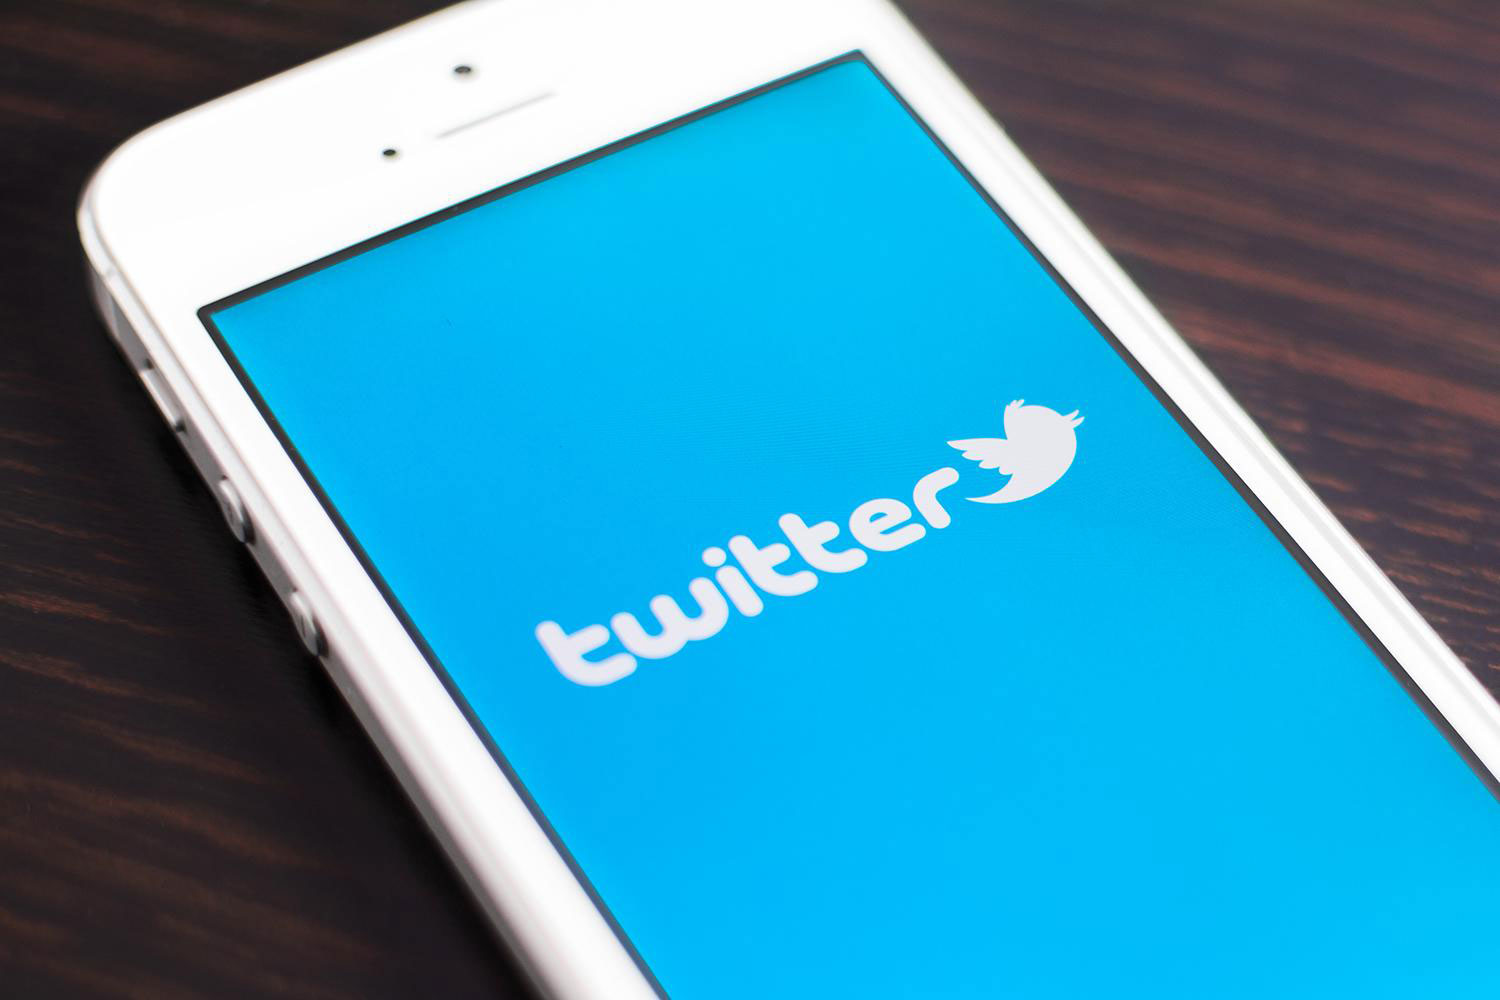 Twitter Introduces New Feature